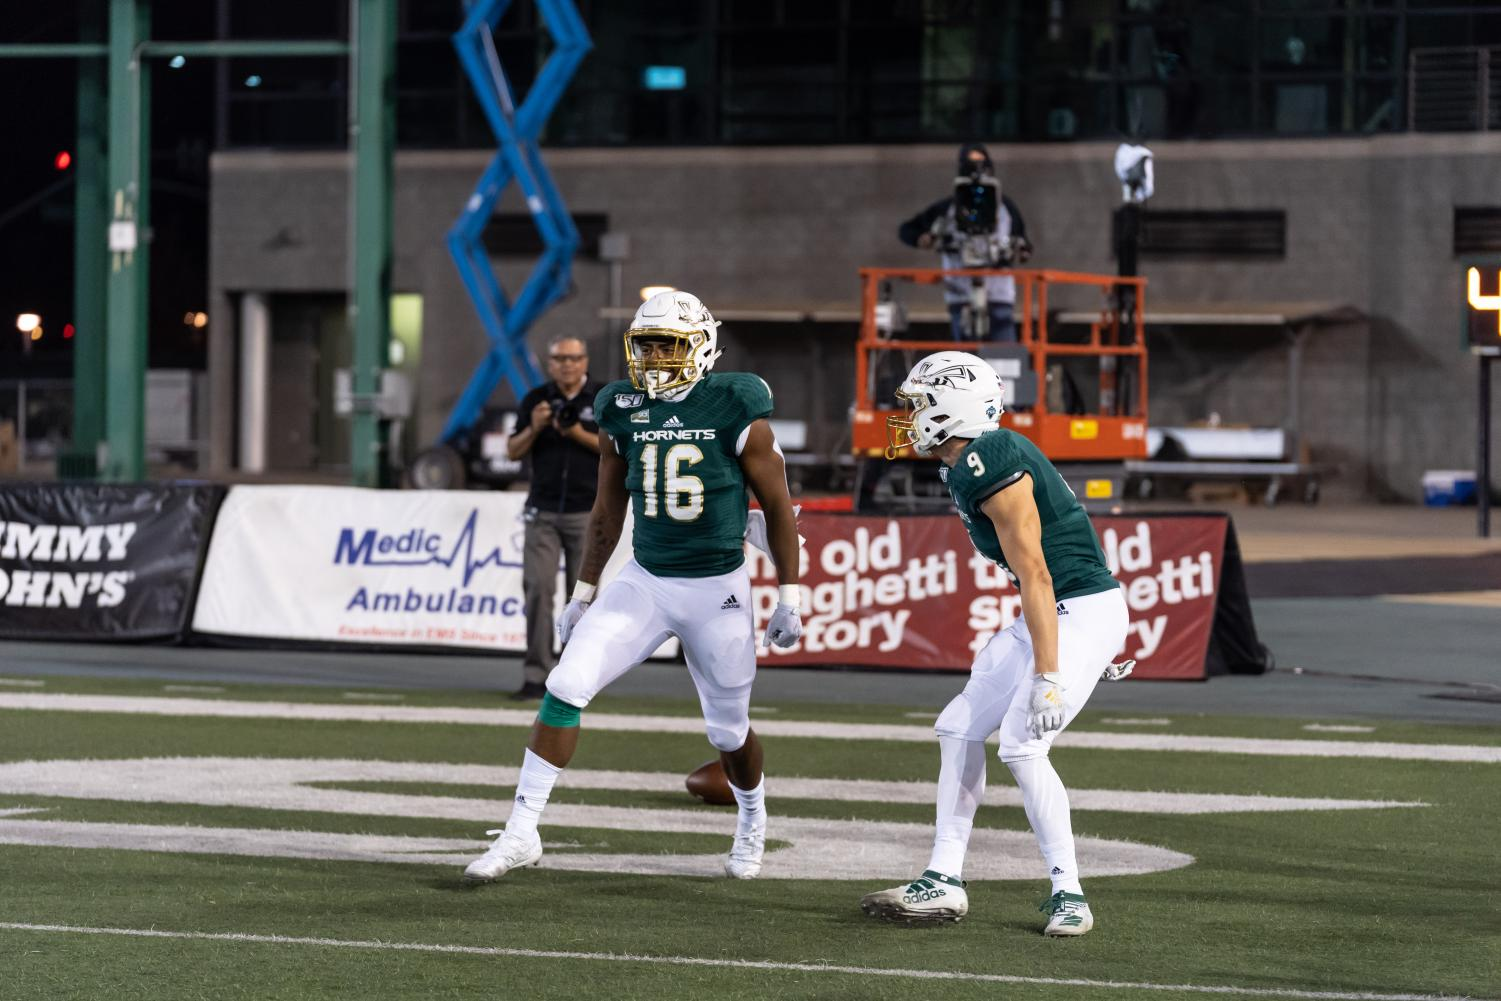 Sac State freshman tight end Marshel Martin (left) celebrates a touchdown with freshman wide receiver Parker Clayton against No. 3 Weber State on Nov. 2 at Hornet Stadium. The Hornets play at Idaho this Saturday in their final road game of the regular season.